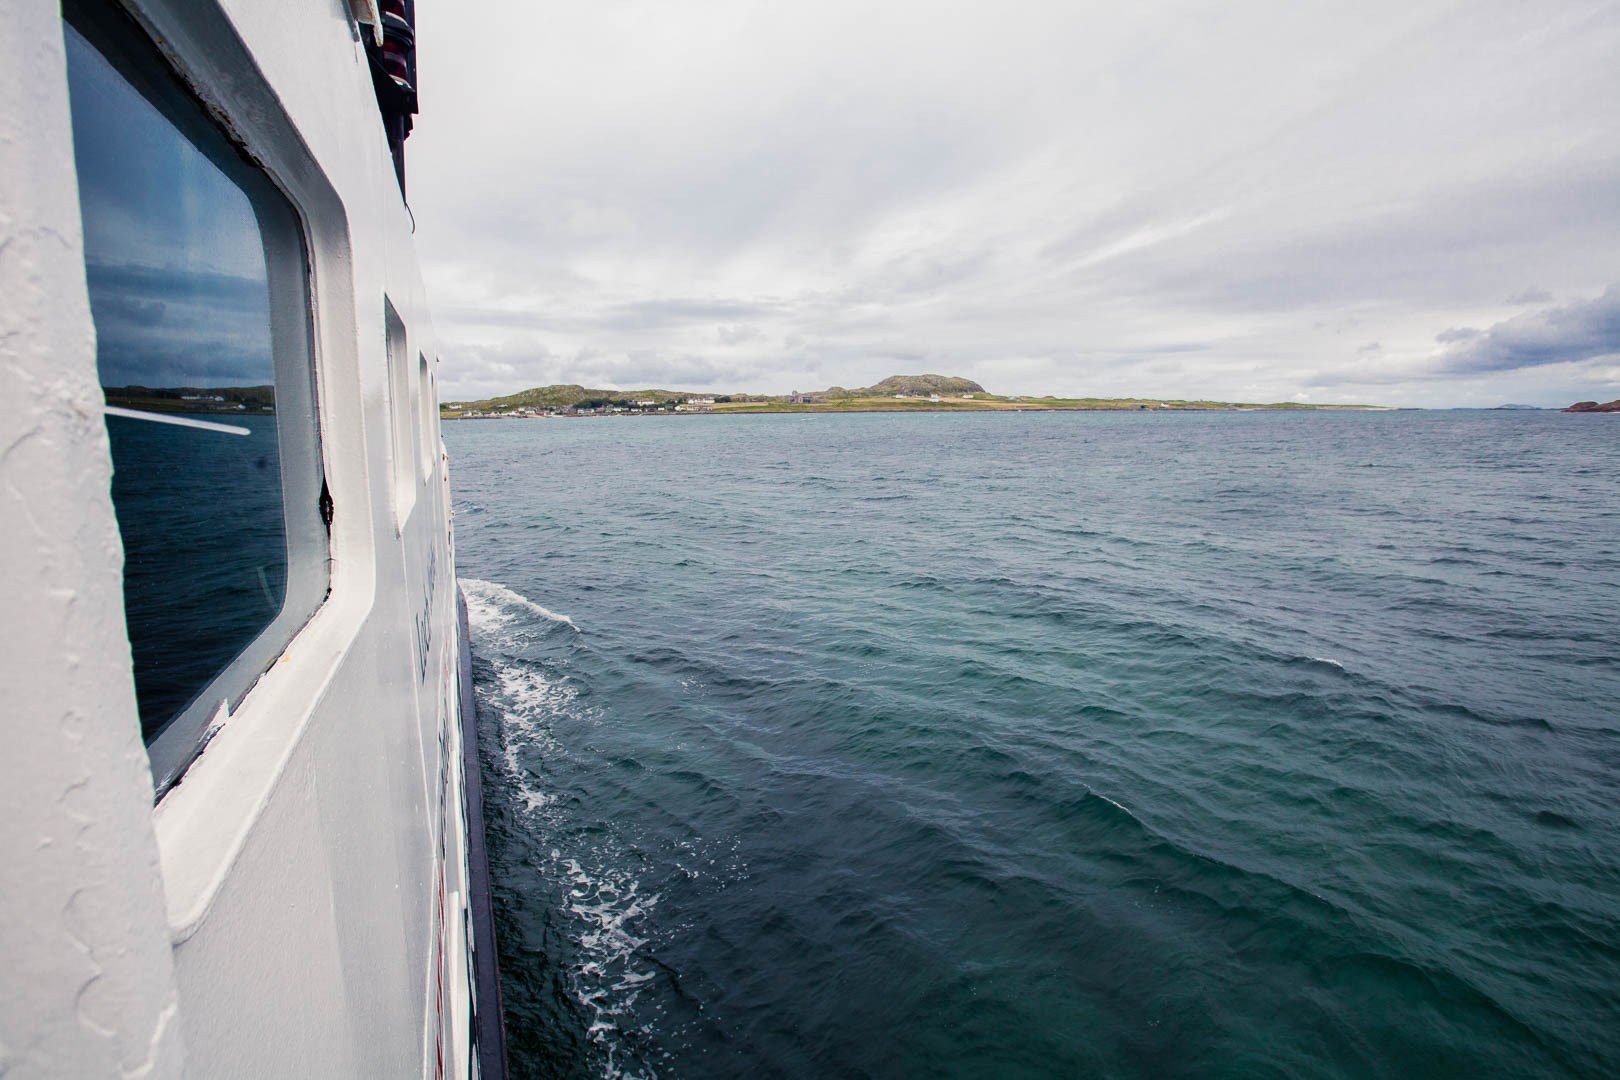 View from a boat at sea. The side of the boat is in the picture on the left and there is a green lat island in the distance on the horizon.